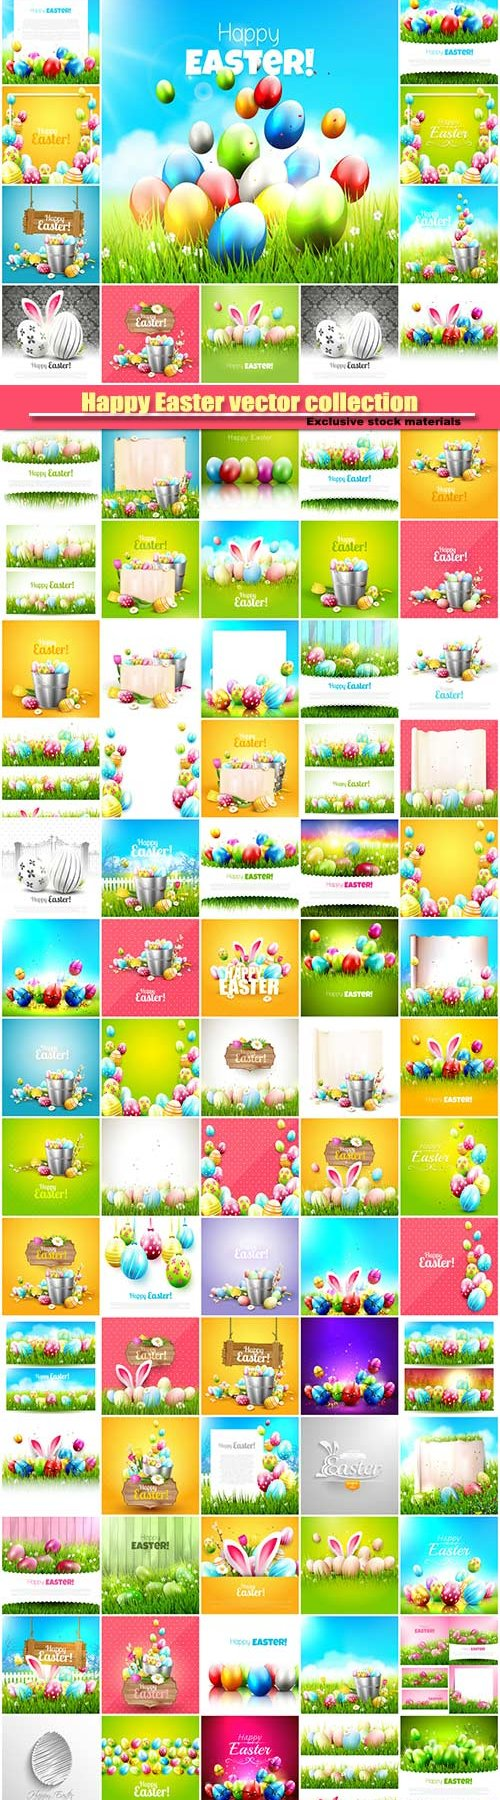 Happy Easter vector collection